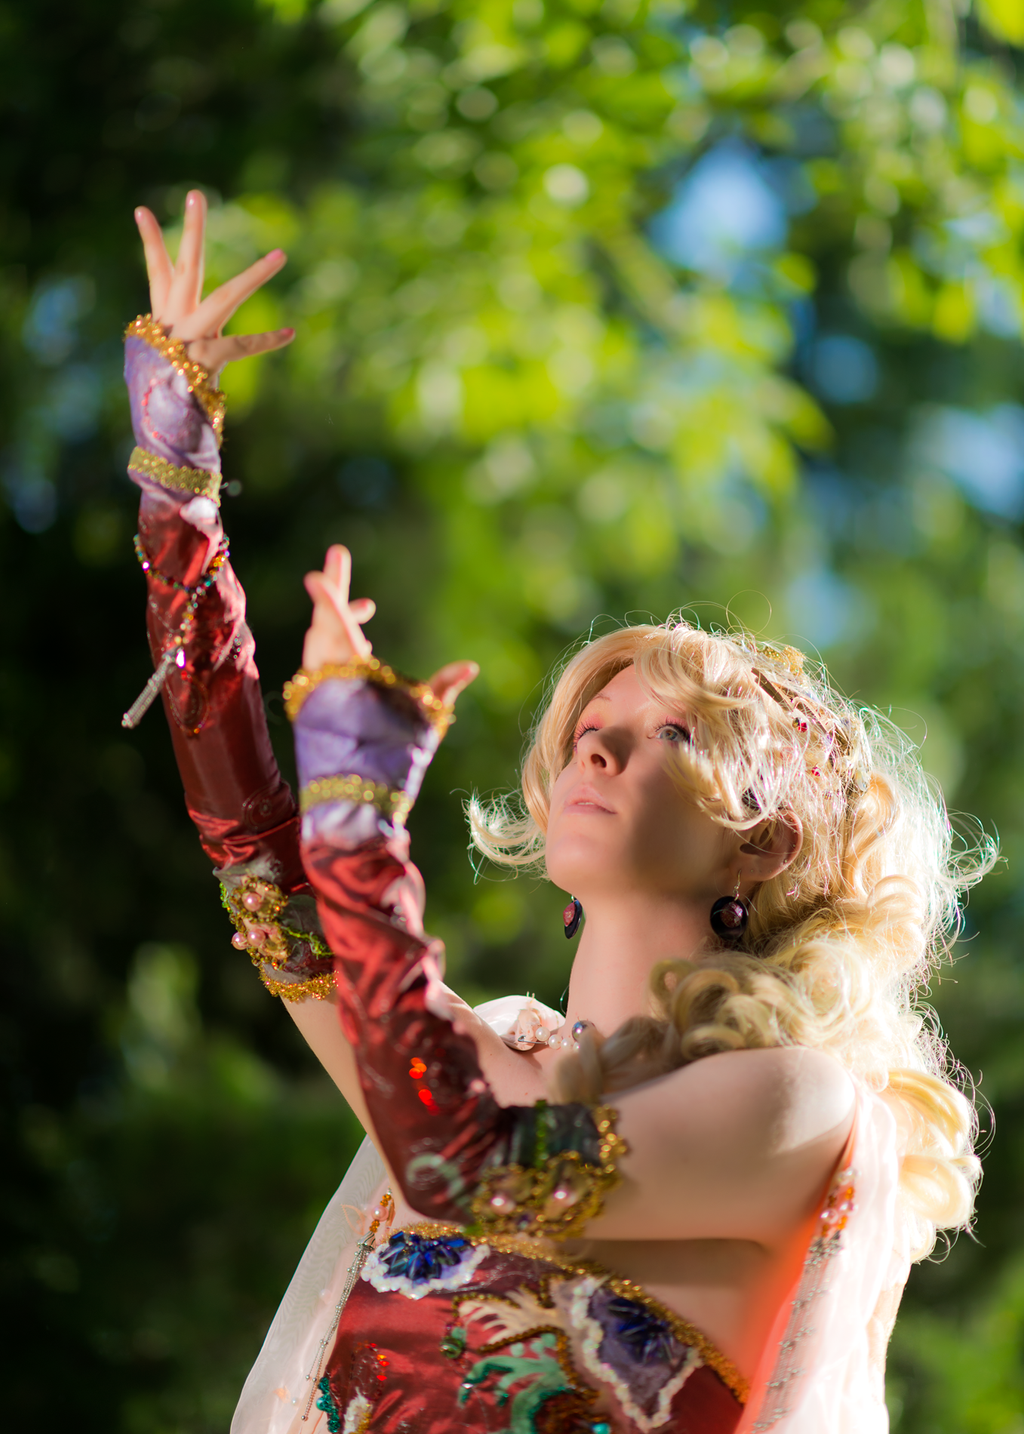 A Ray of Hope by Sandman-AC